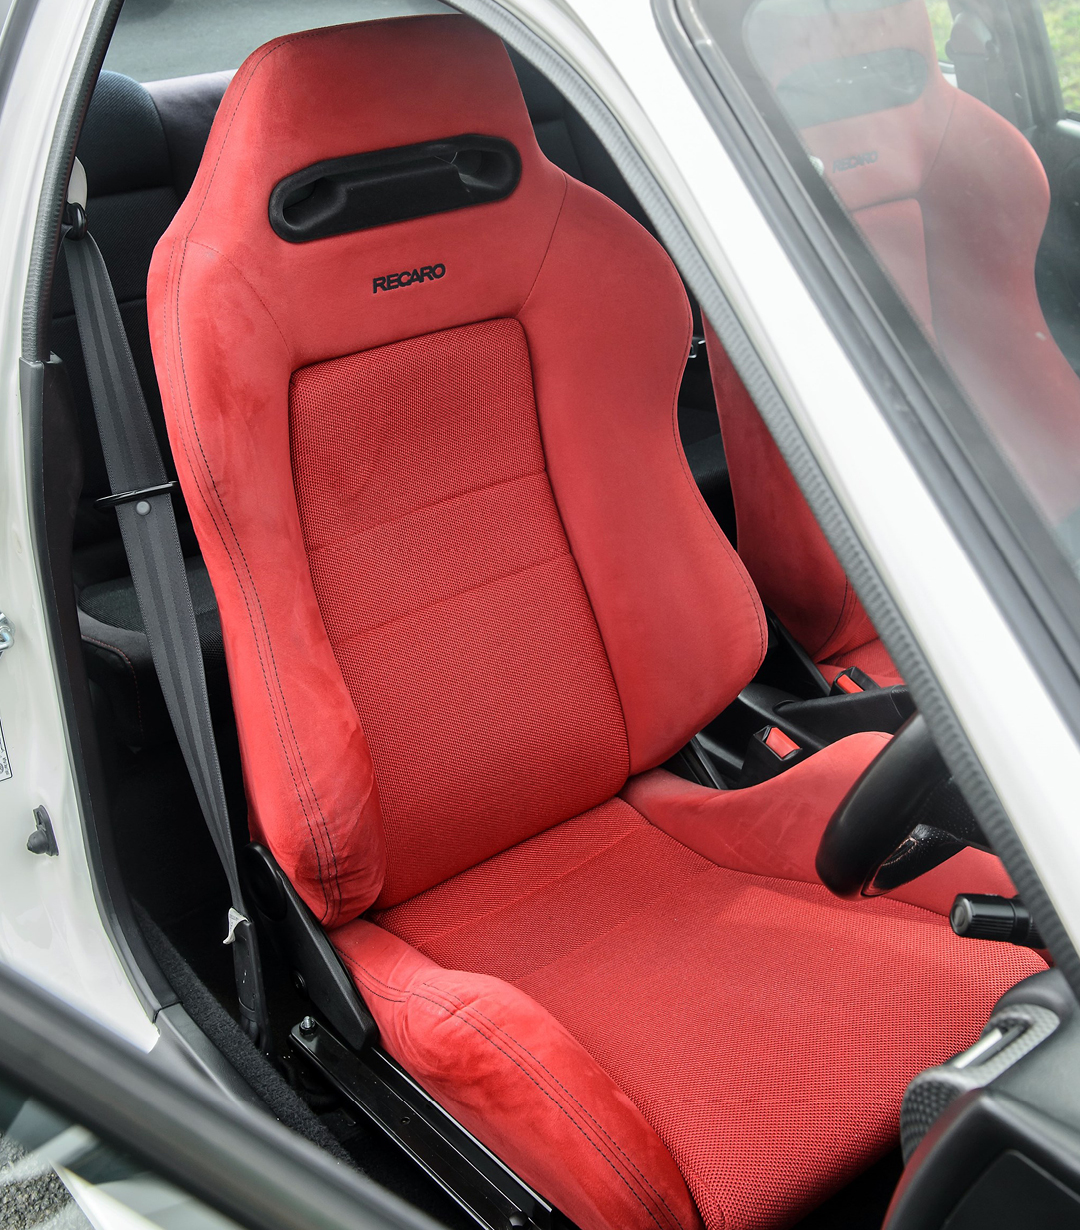 Honda Integra seats